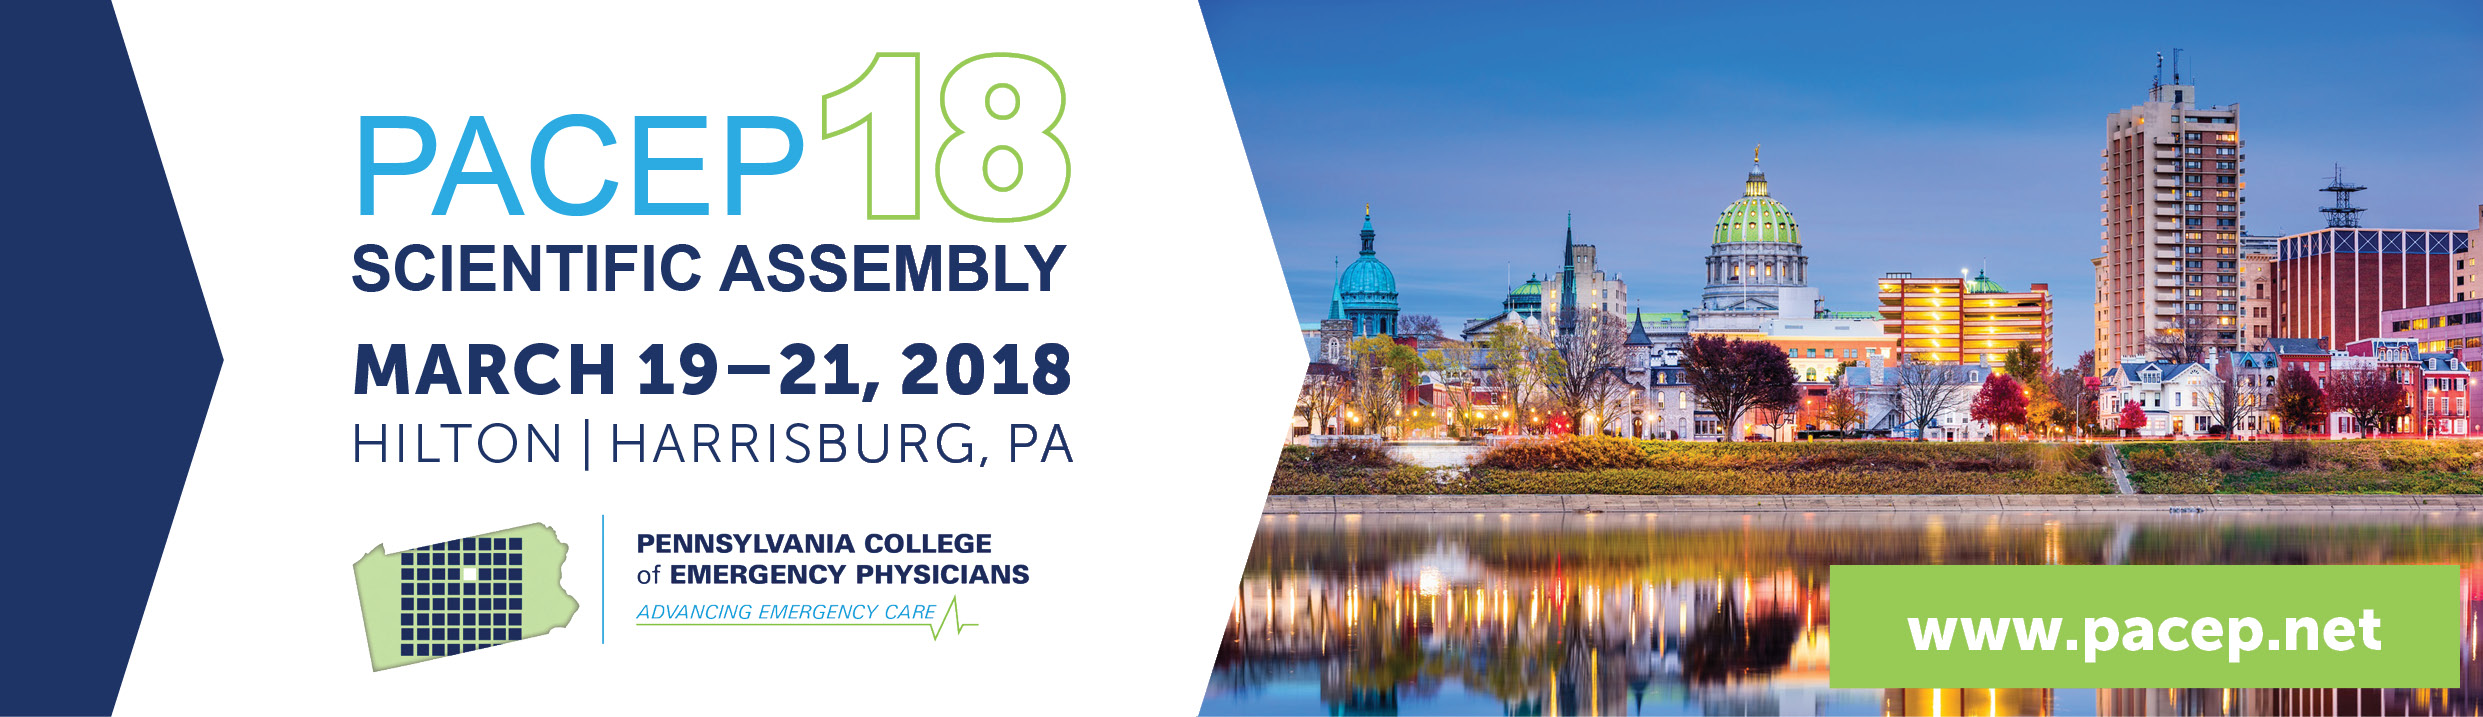 PACEP18 Scientific Assembly